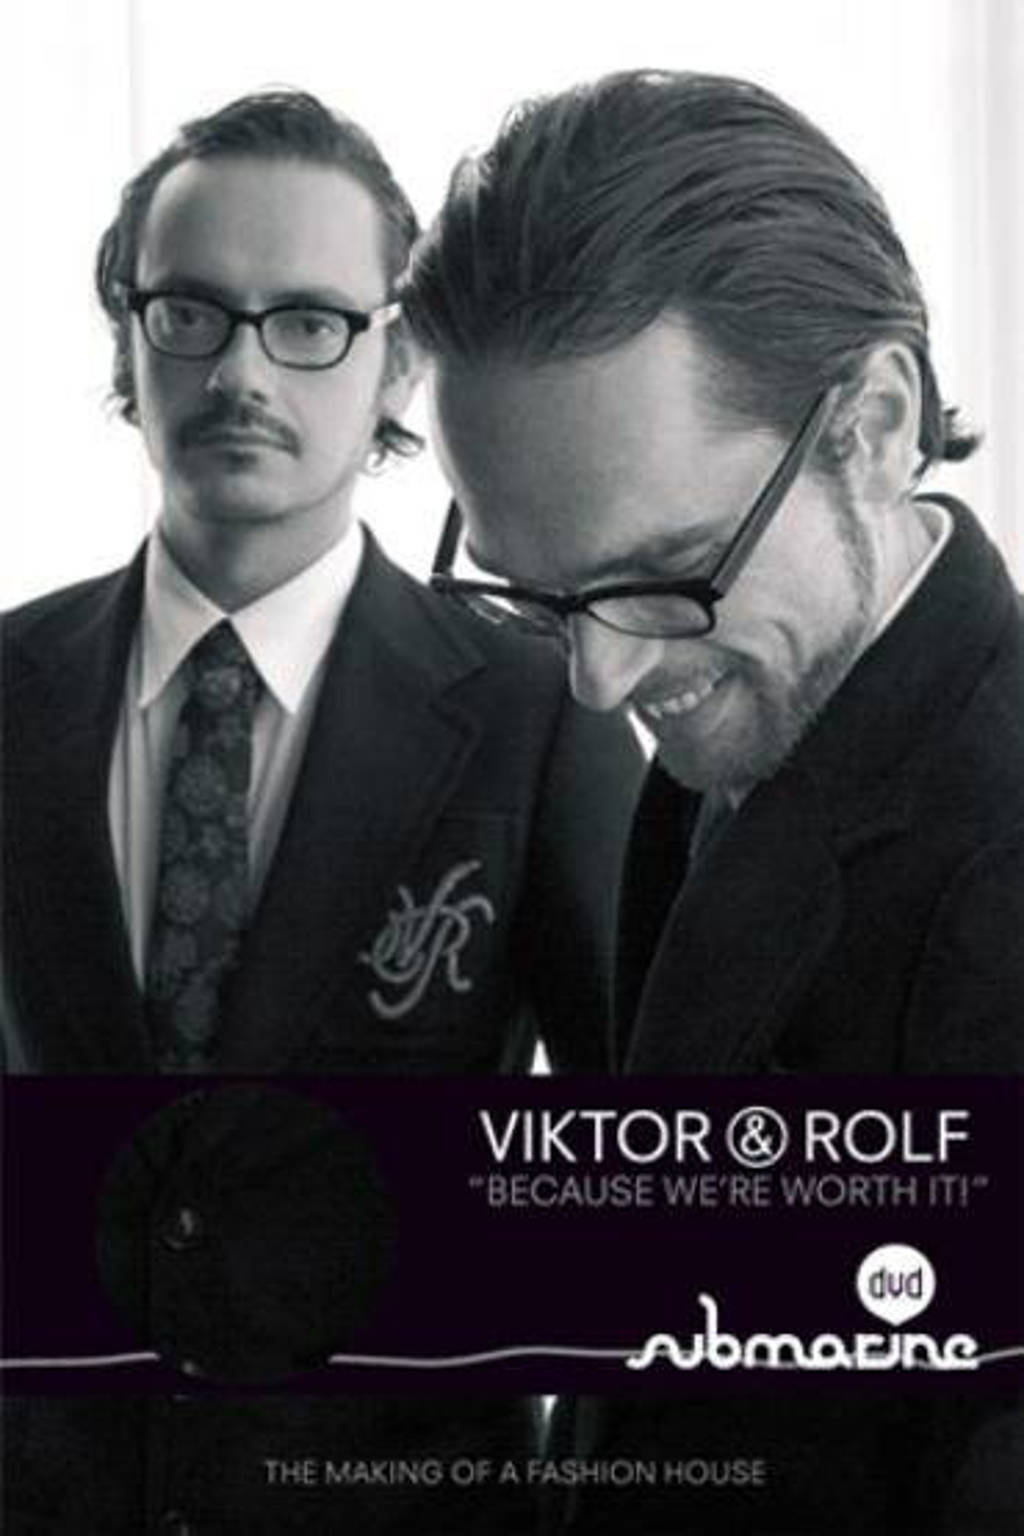 Victor & rolf - Because we're worth it (DVD)